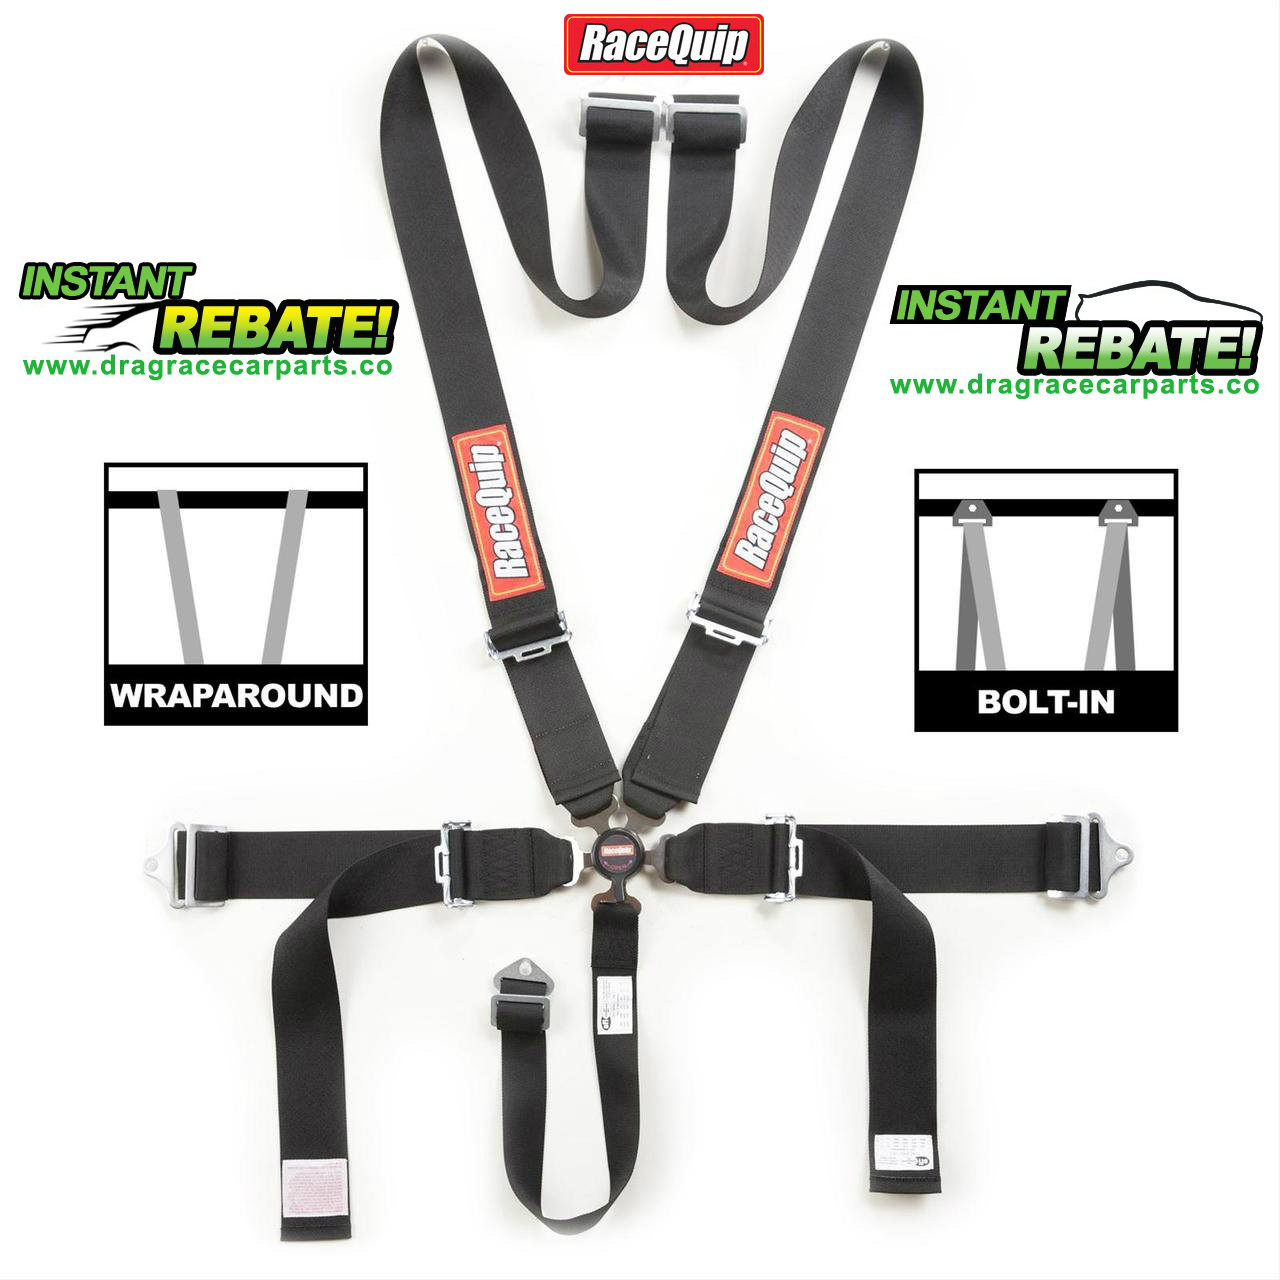 Safety Belt Racequip Sfi 16 1 Camlock Black 5 Point Seat Belt Safety Harness 741001